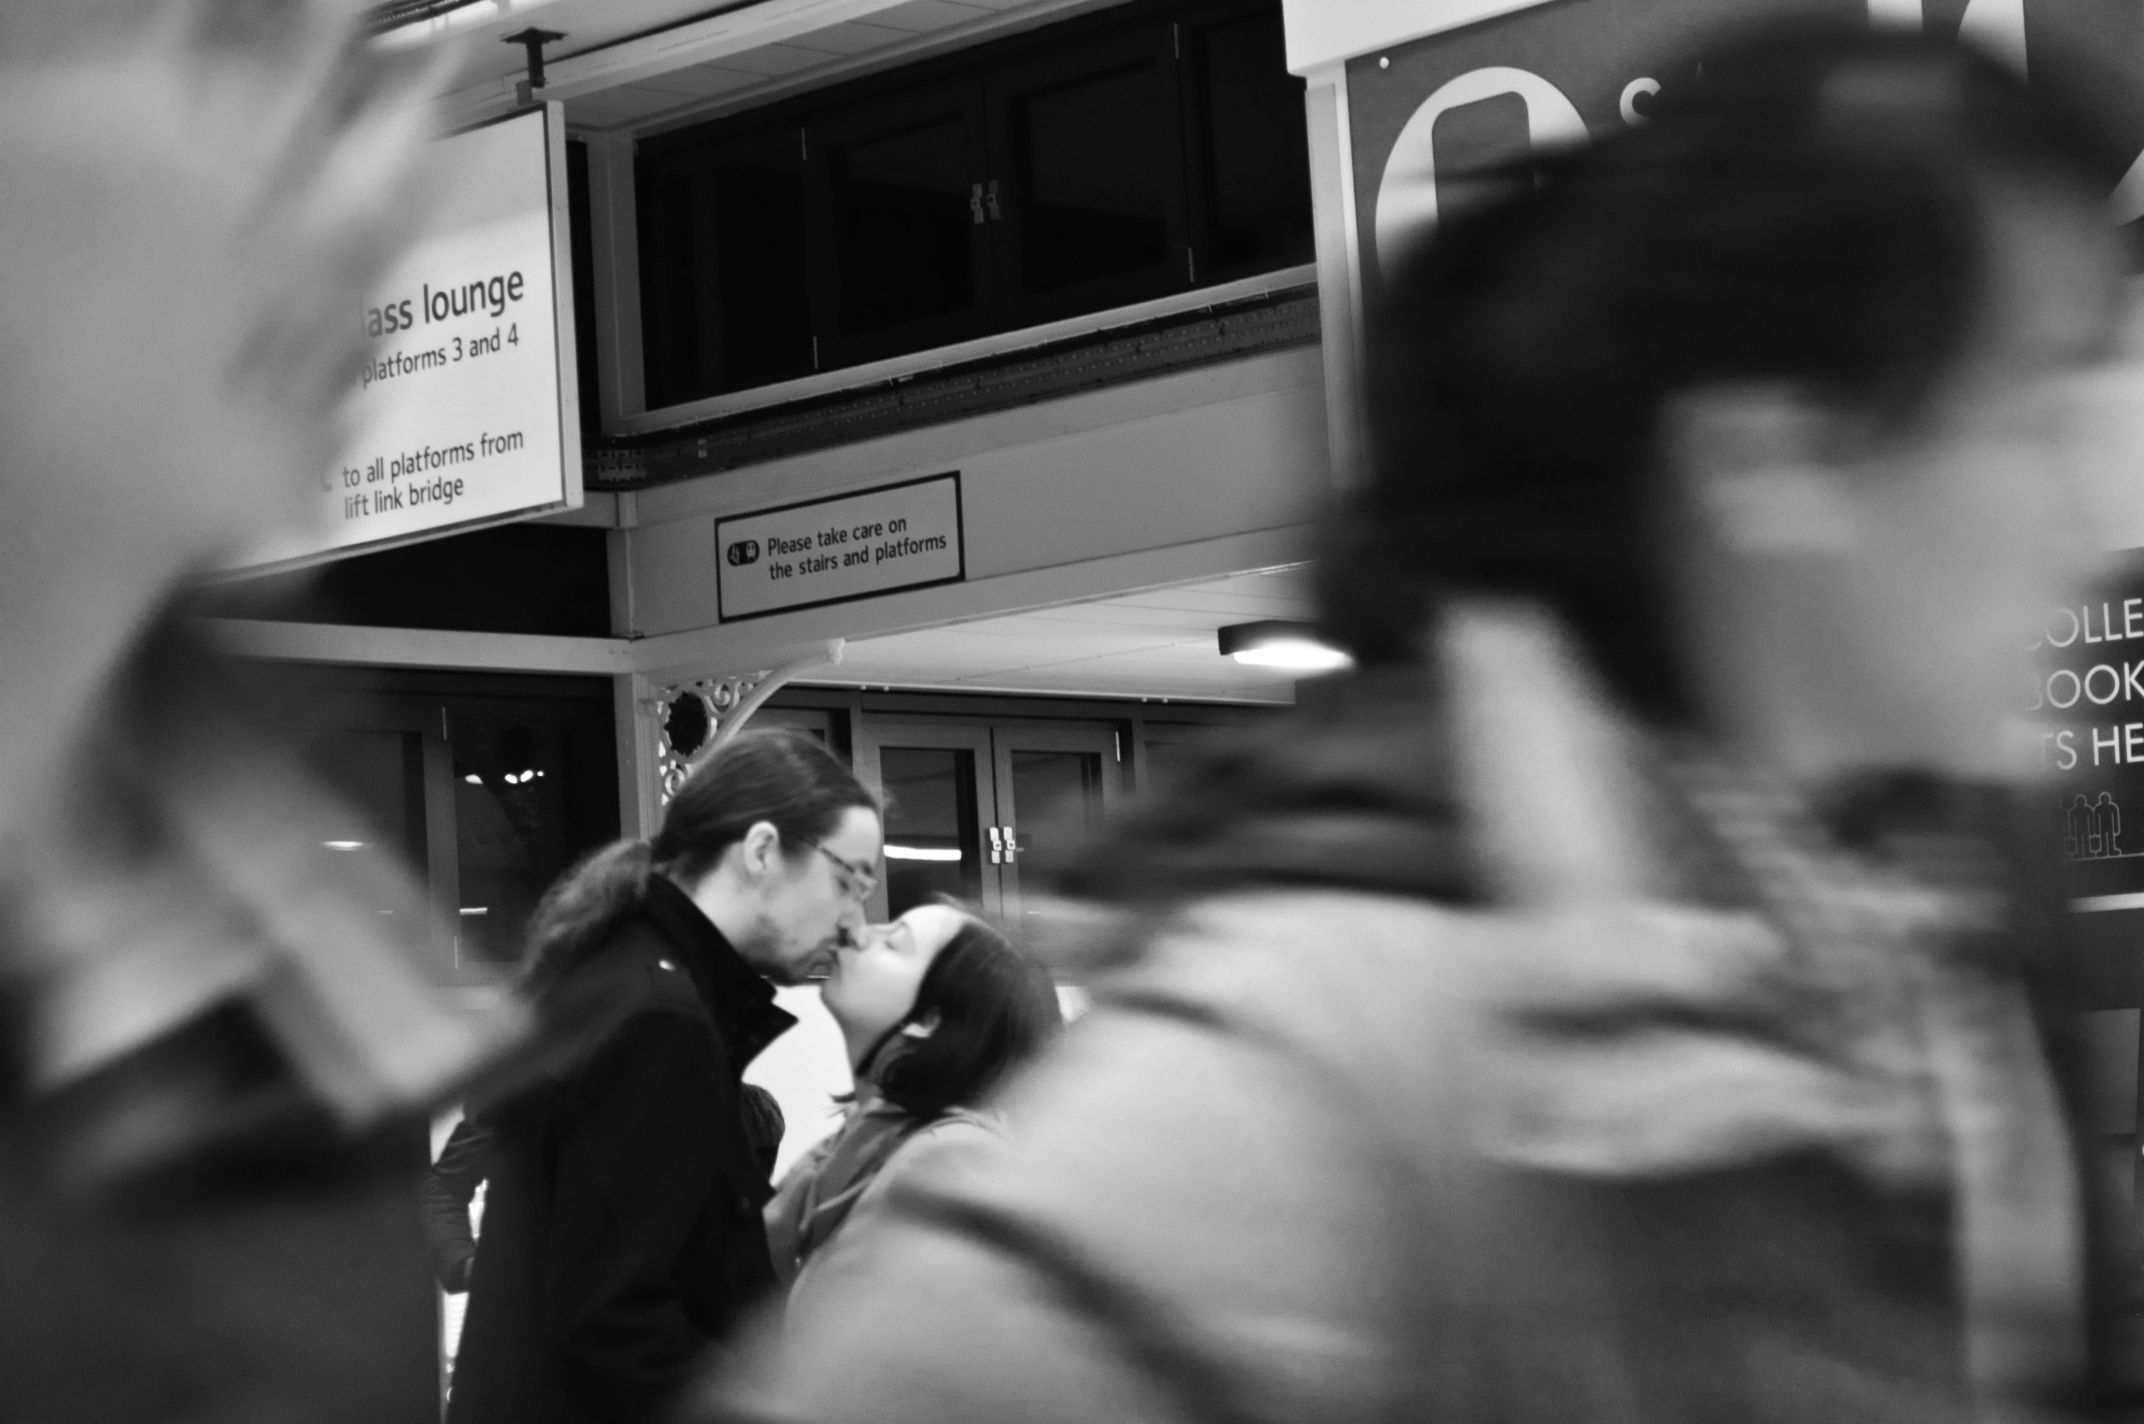 This photography is mine, I made it practicing candid moment photography at the train station. :)